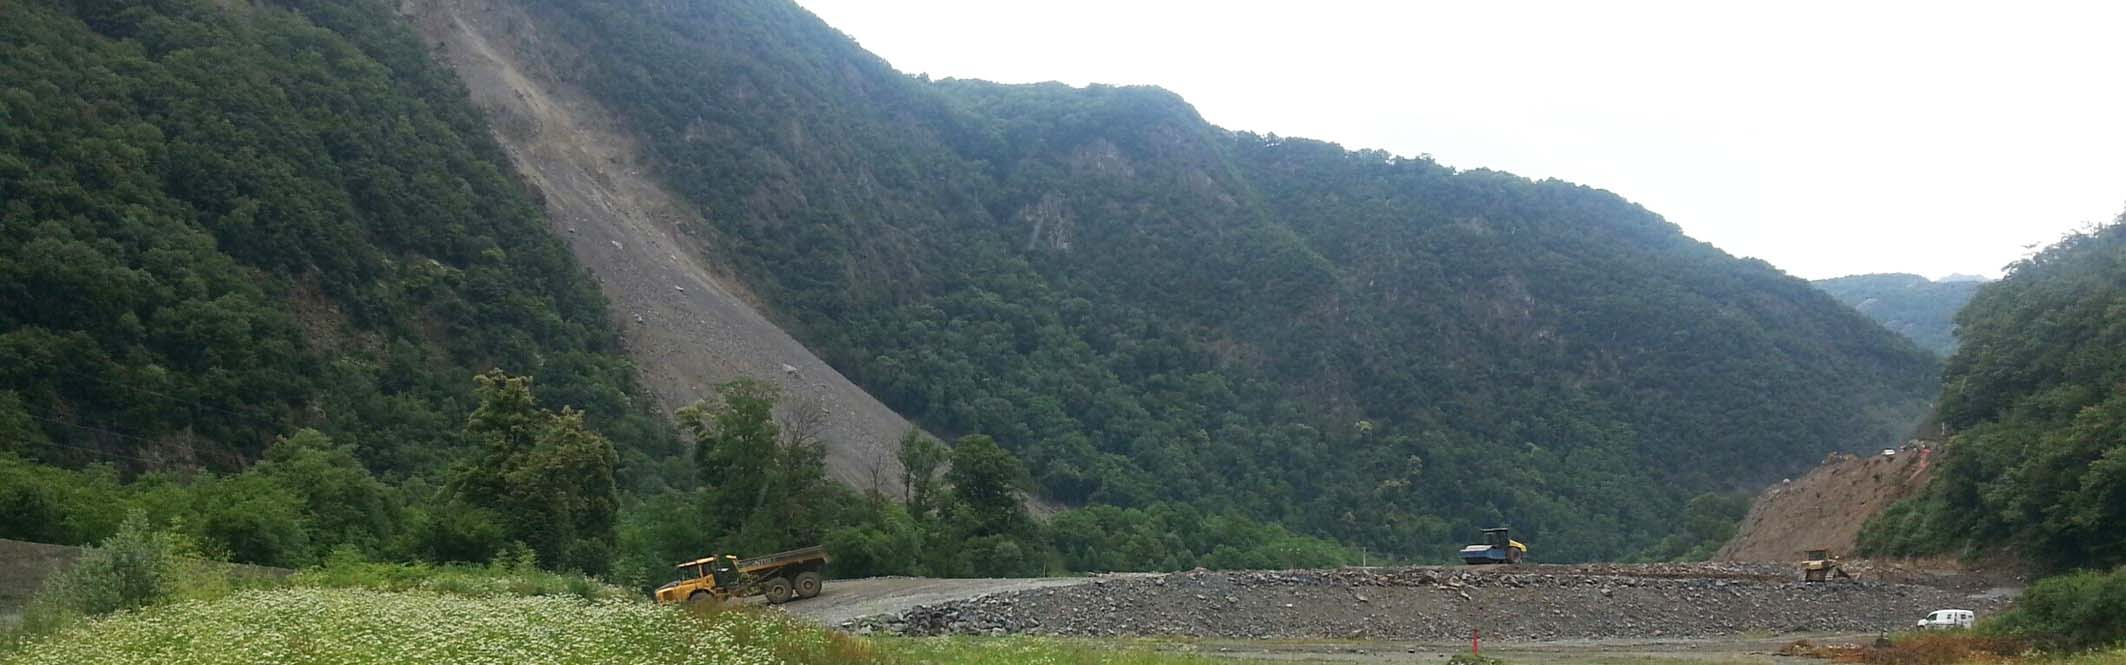 Séchilienne landslide: mitigation work at the toe of the slope